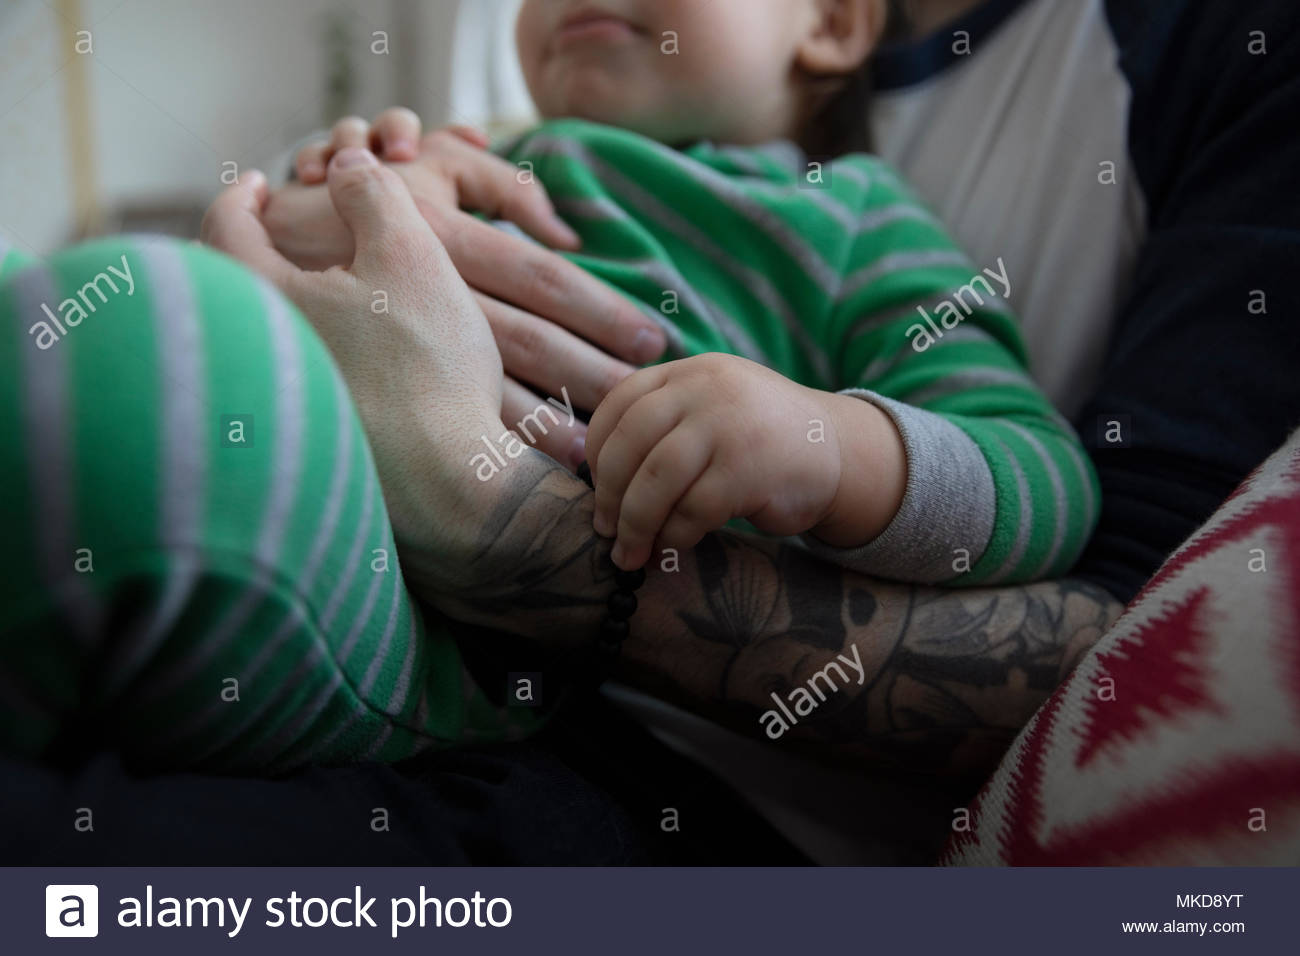 Close up affectionate, tender father cuddling baby son - Stock Image